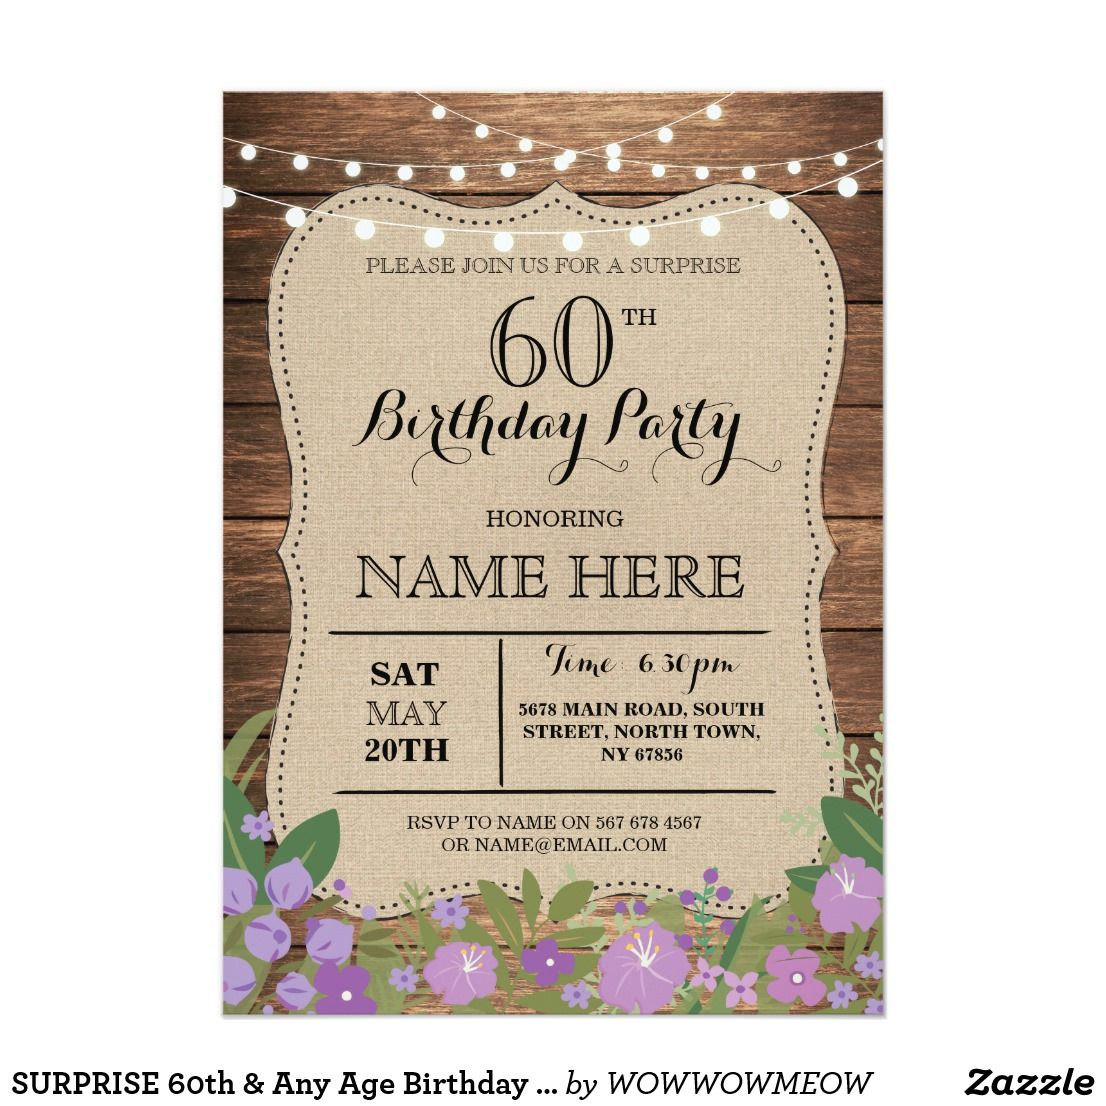 SURPRISE 60th & Any Age Birthday Party Wood Invite | Party ...